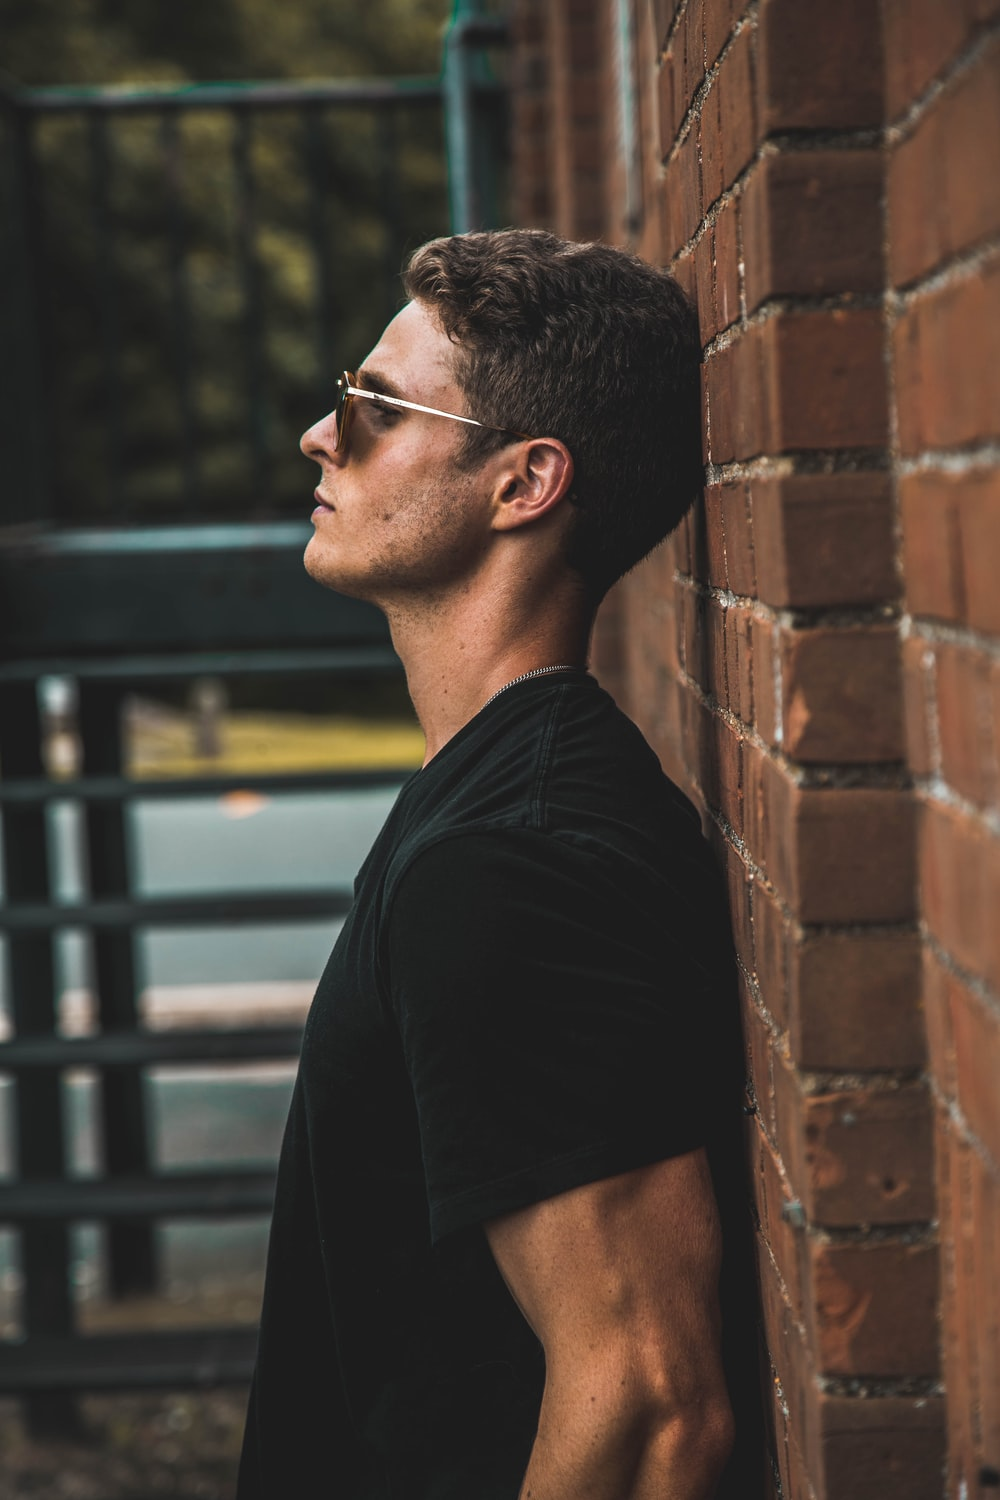 man in black short-sleeved shirt leaning on brow brick wall